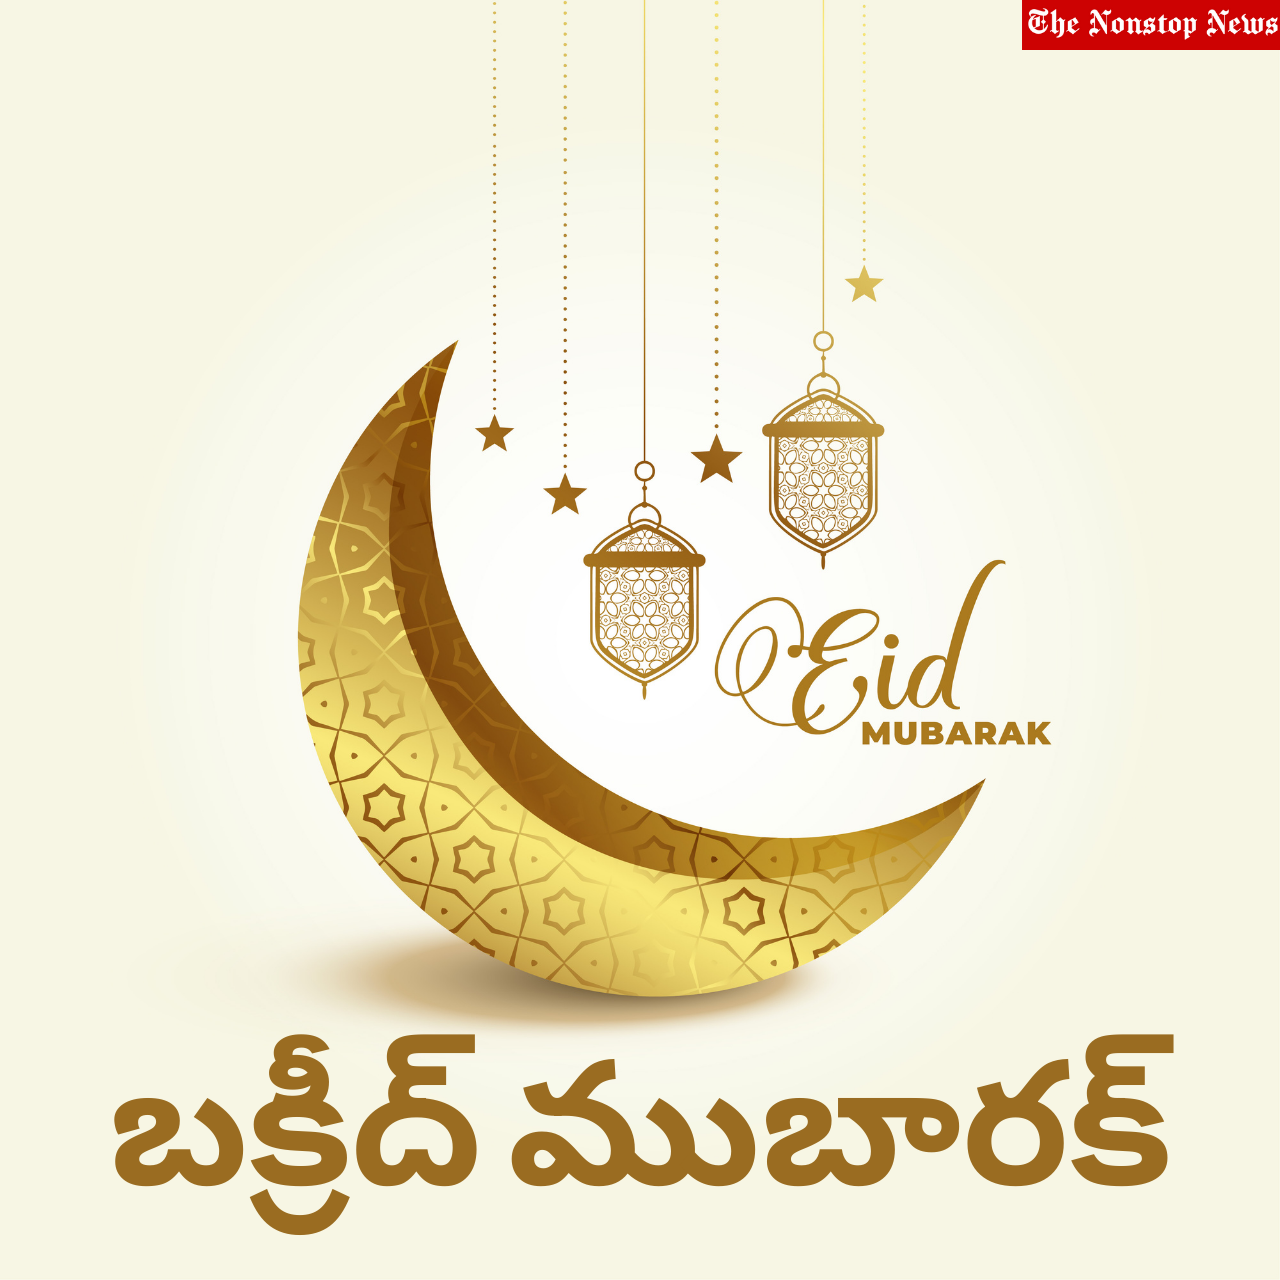 Bakrid Mubarak 2021 Telugu and Kannada Wishes, Images, Quotes, Greetings, Status, Messages, and Dua to greet your Friend, Relative, or Loved Ones on Eid ul Adha